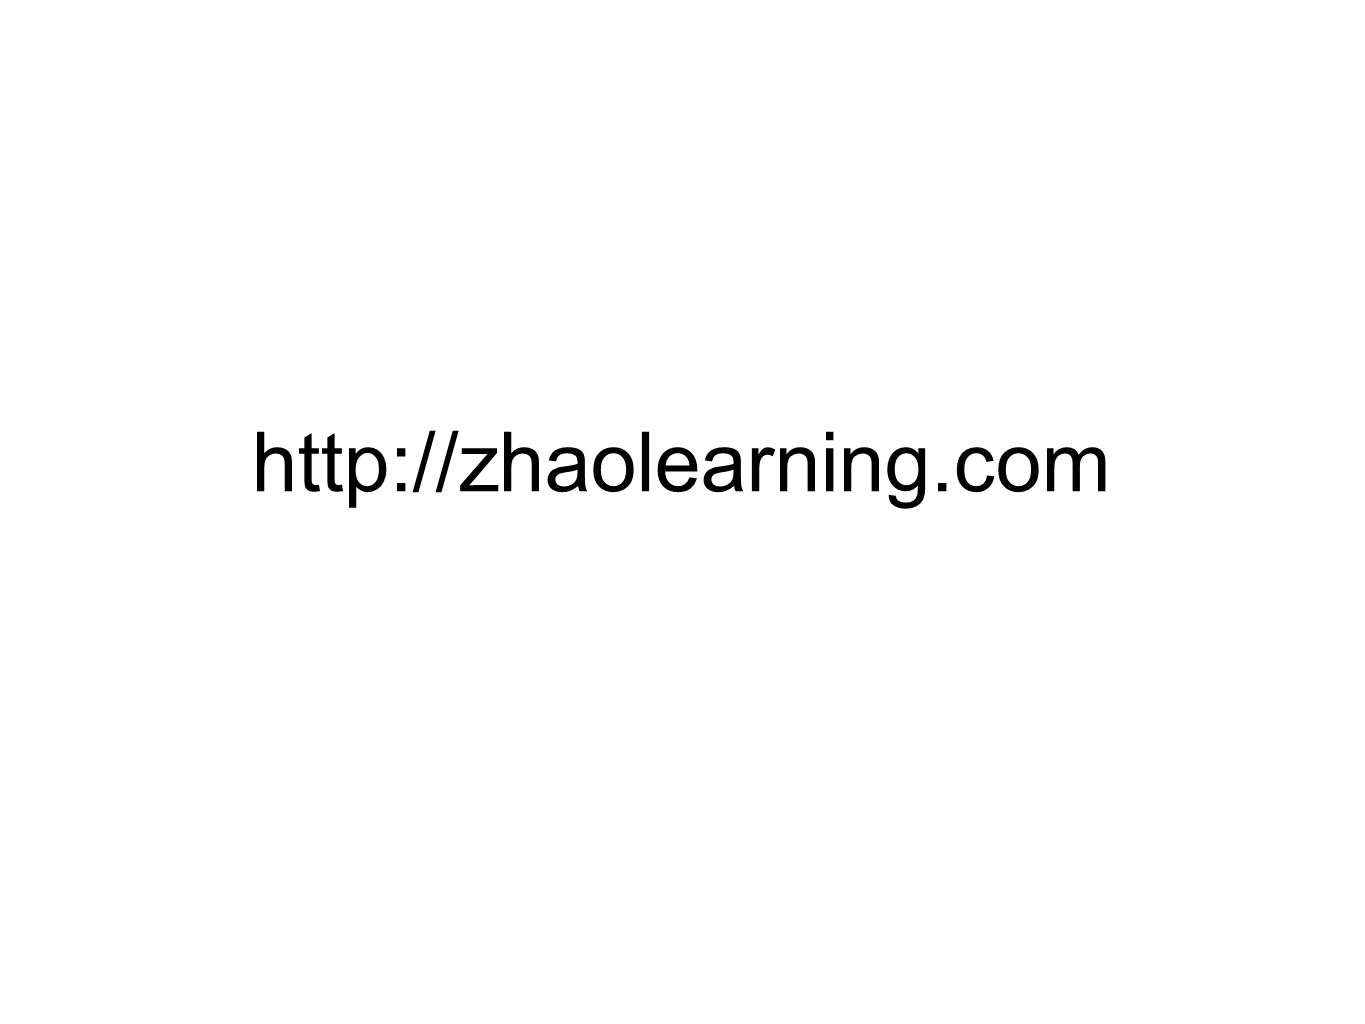 http://zhaolearning.com